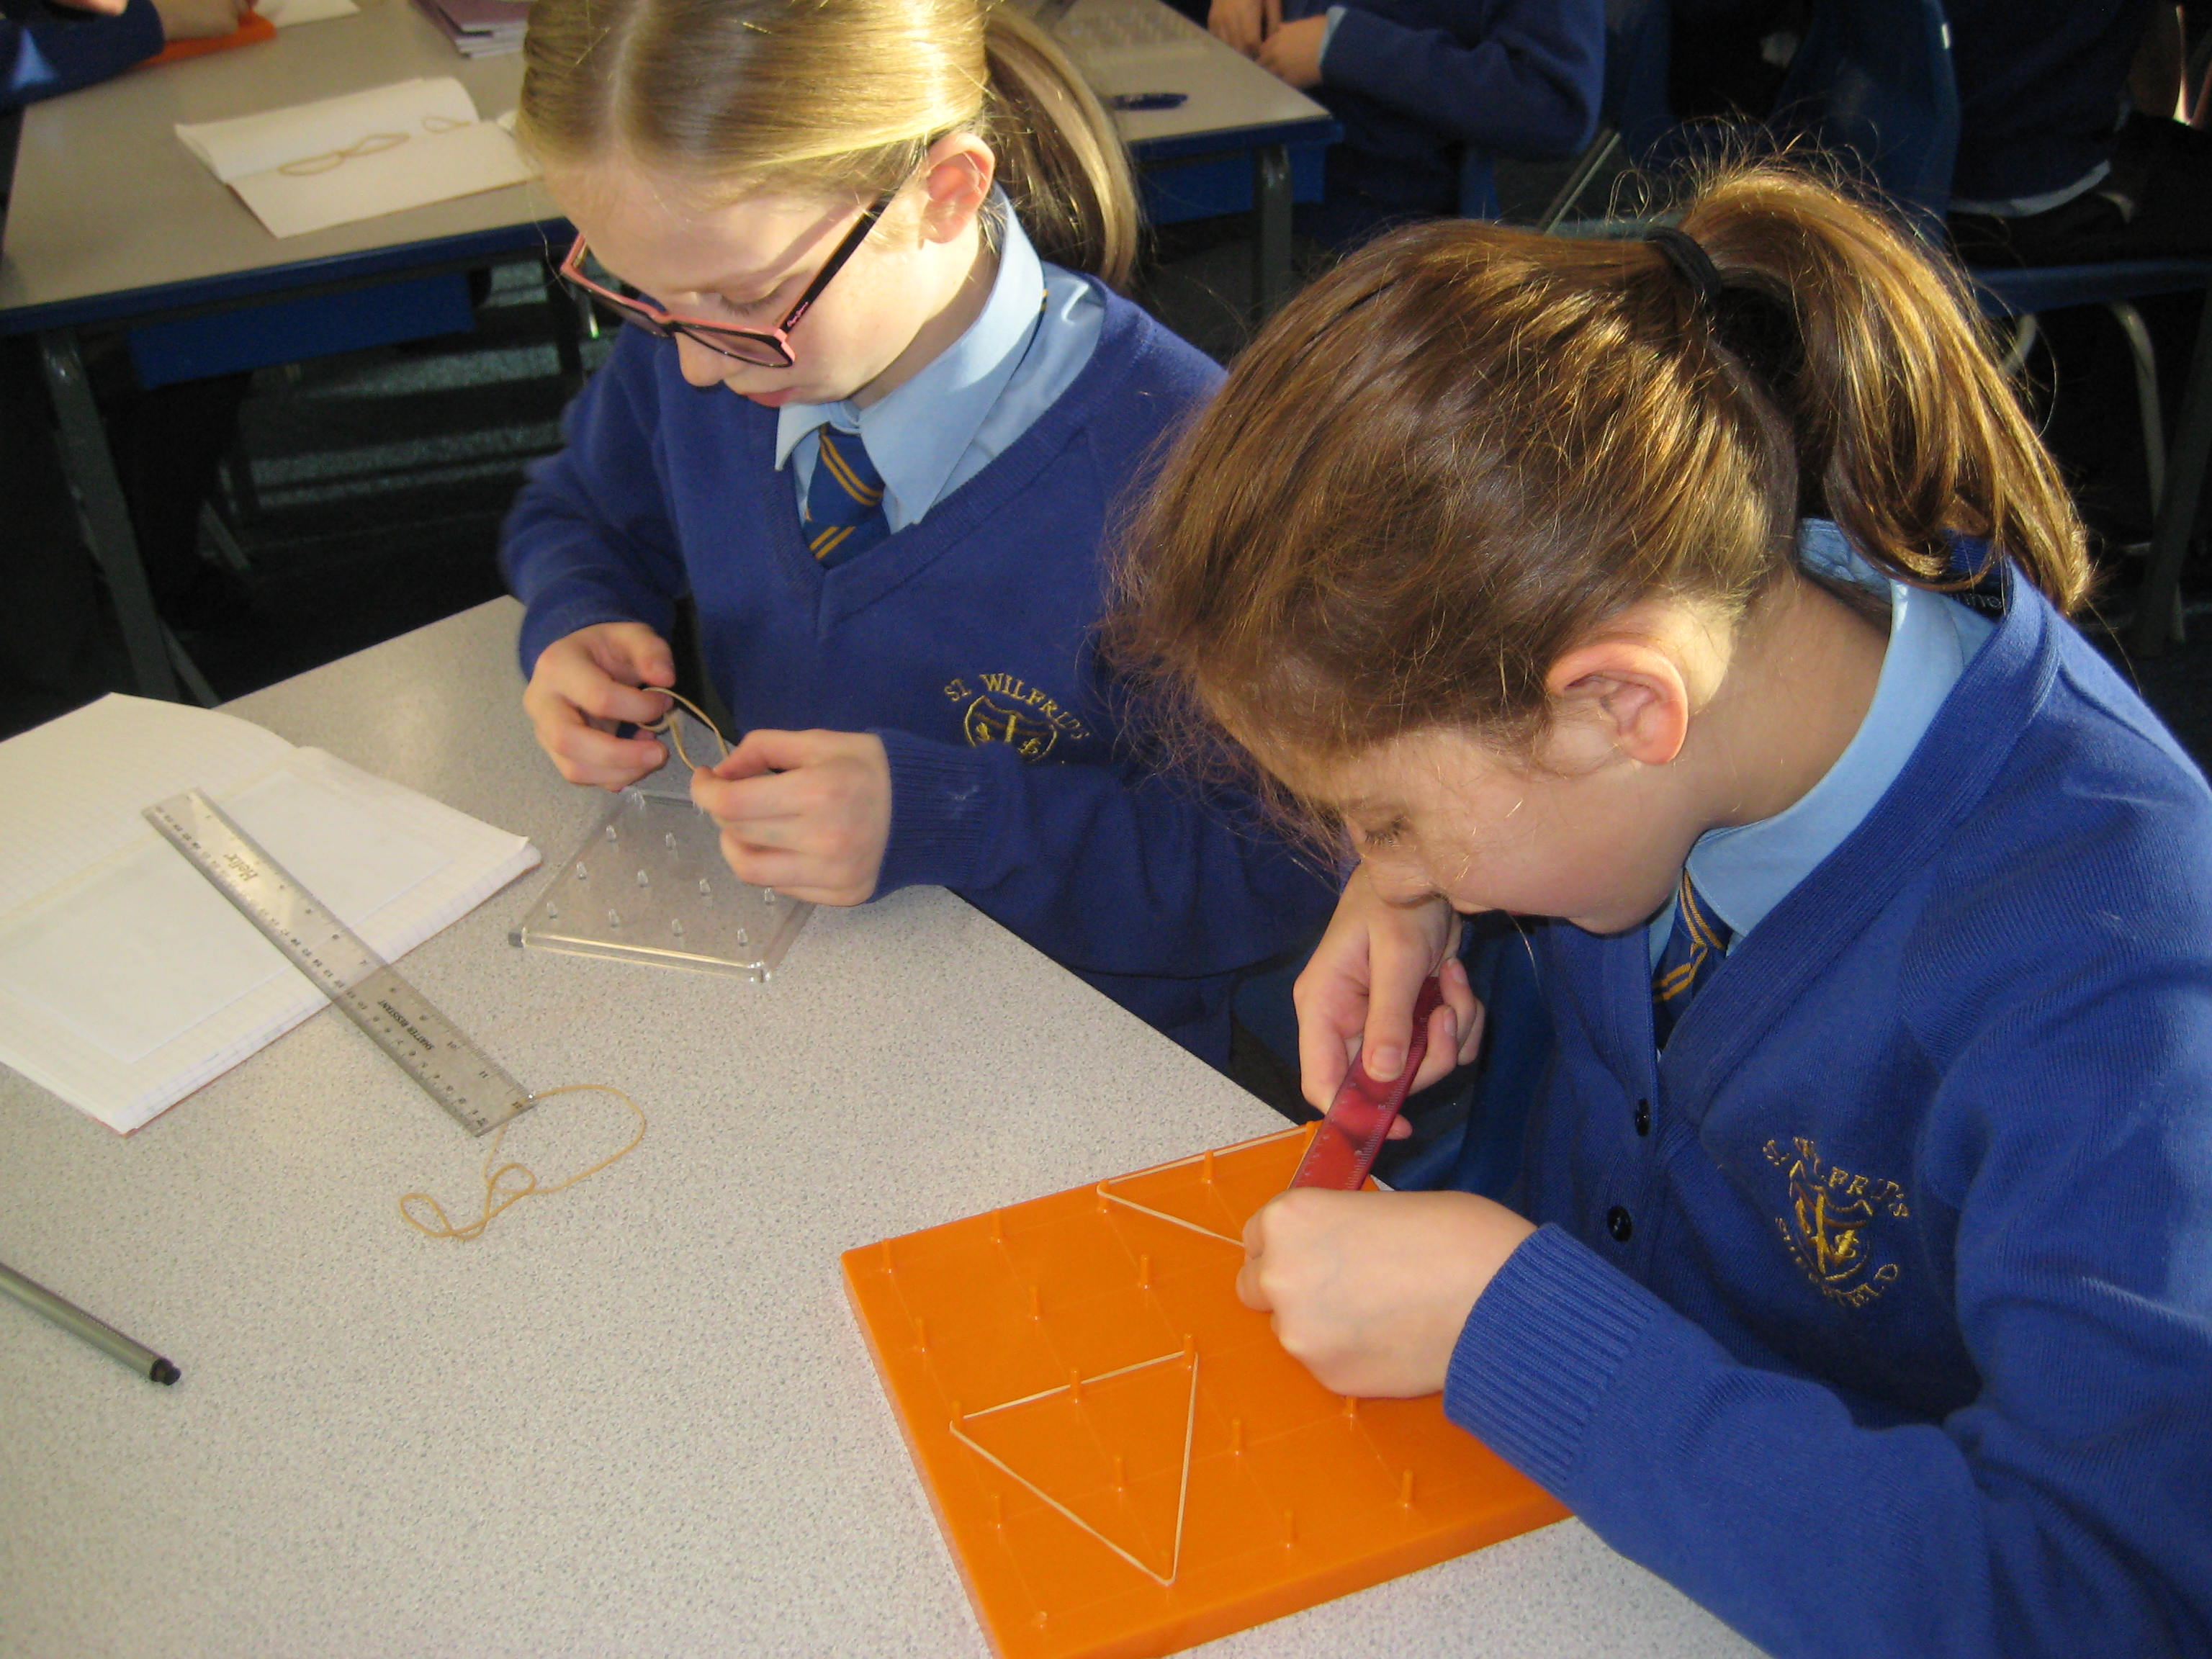 Investigating The Properties Of Triangles And